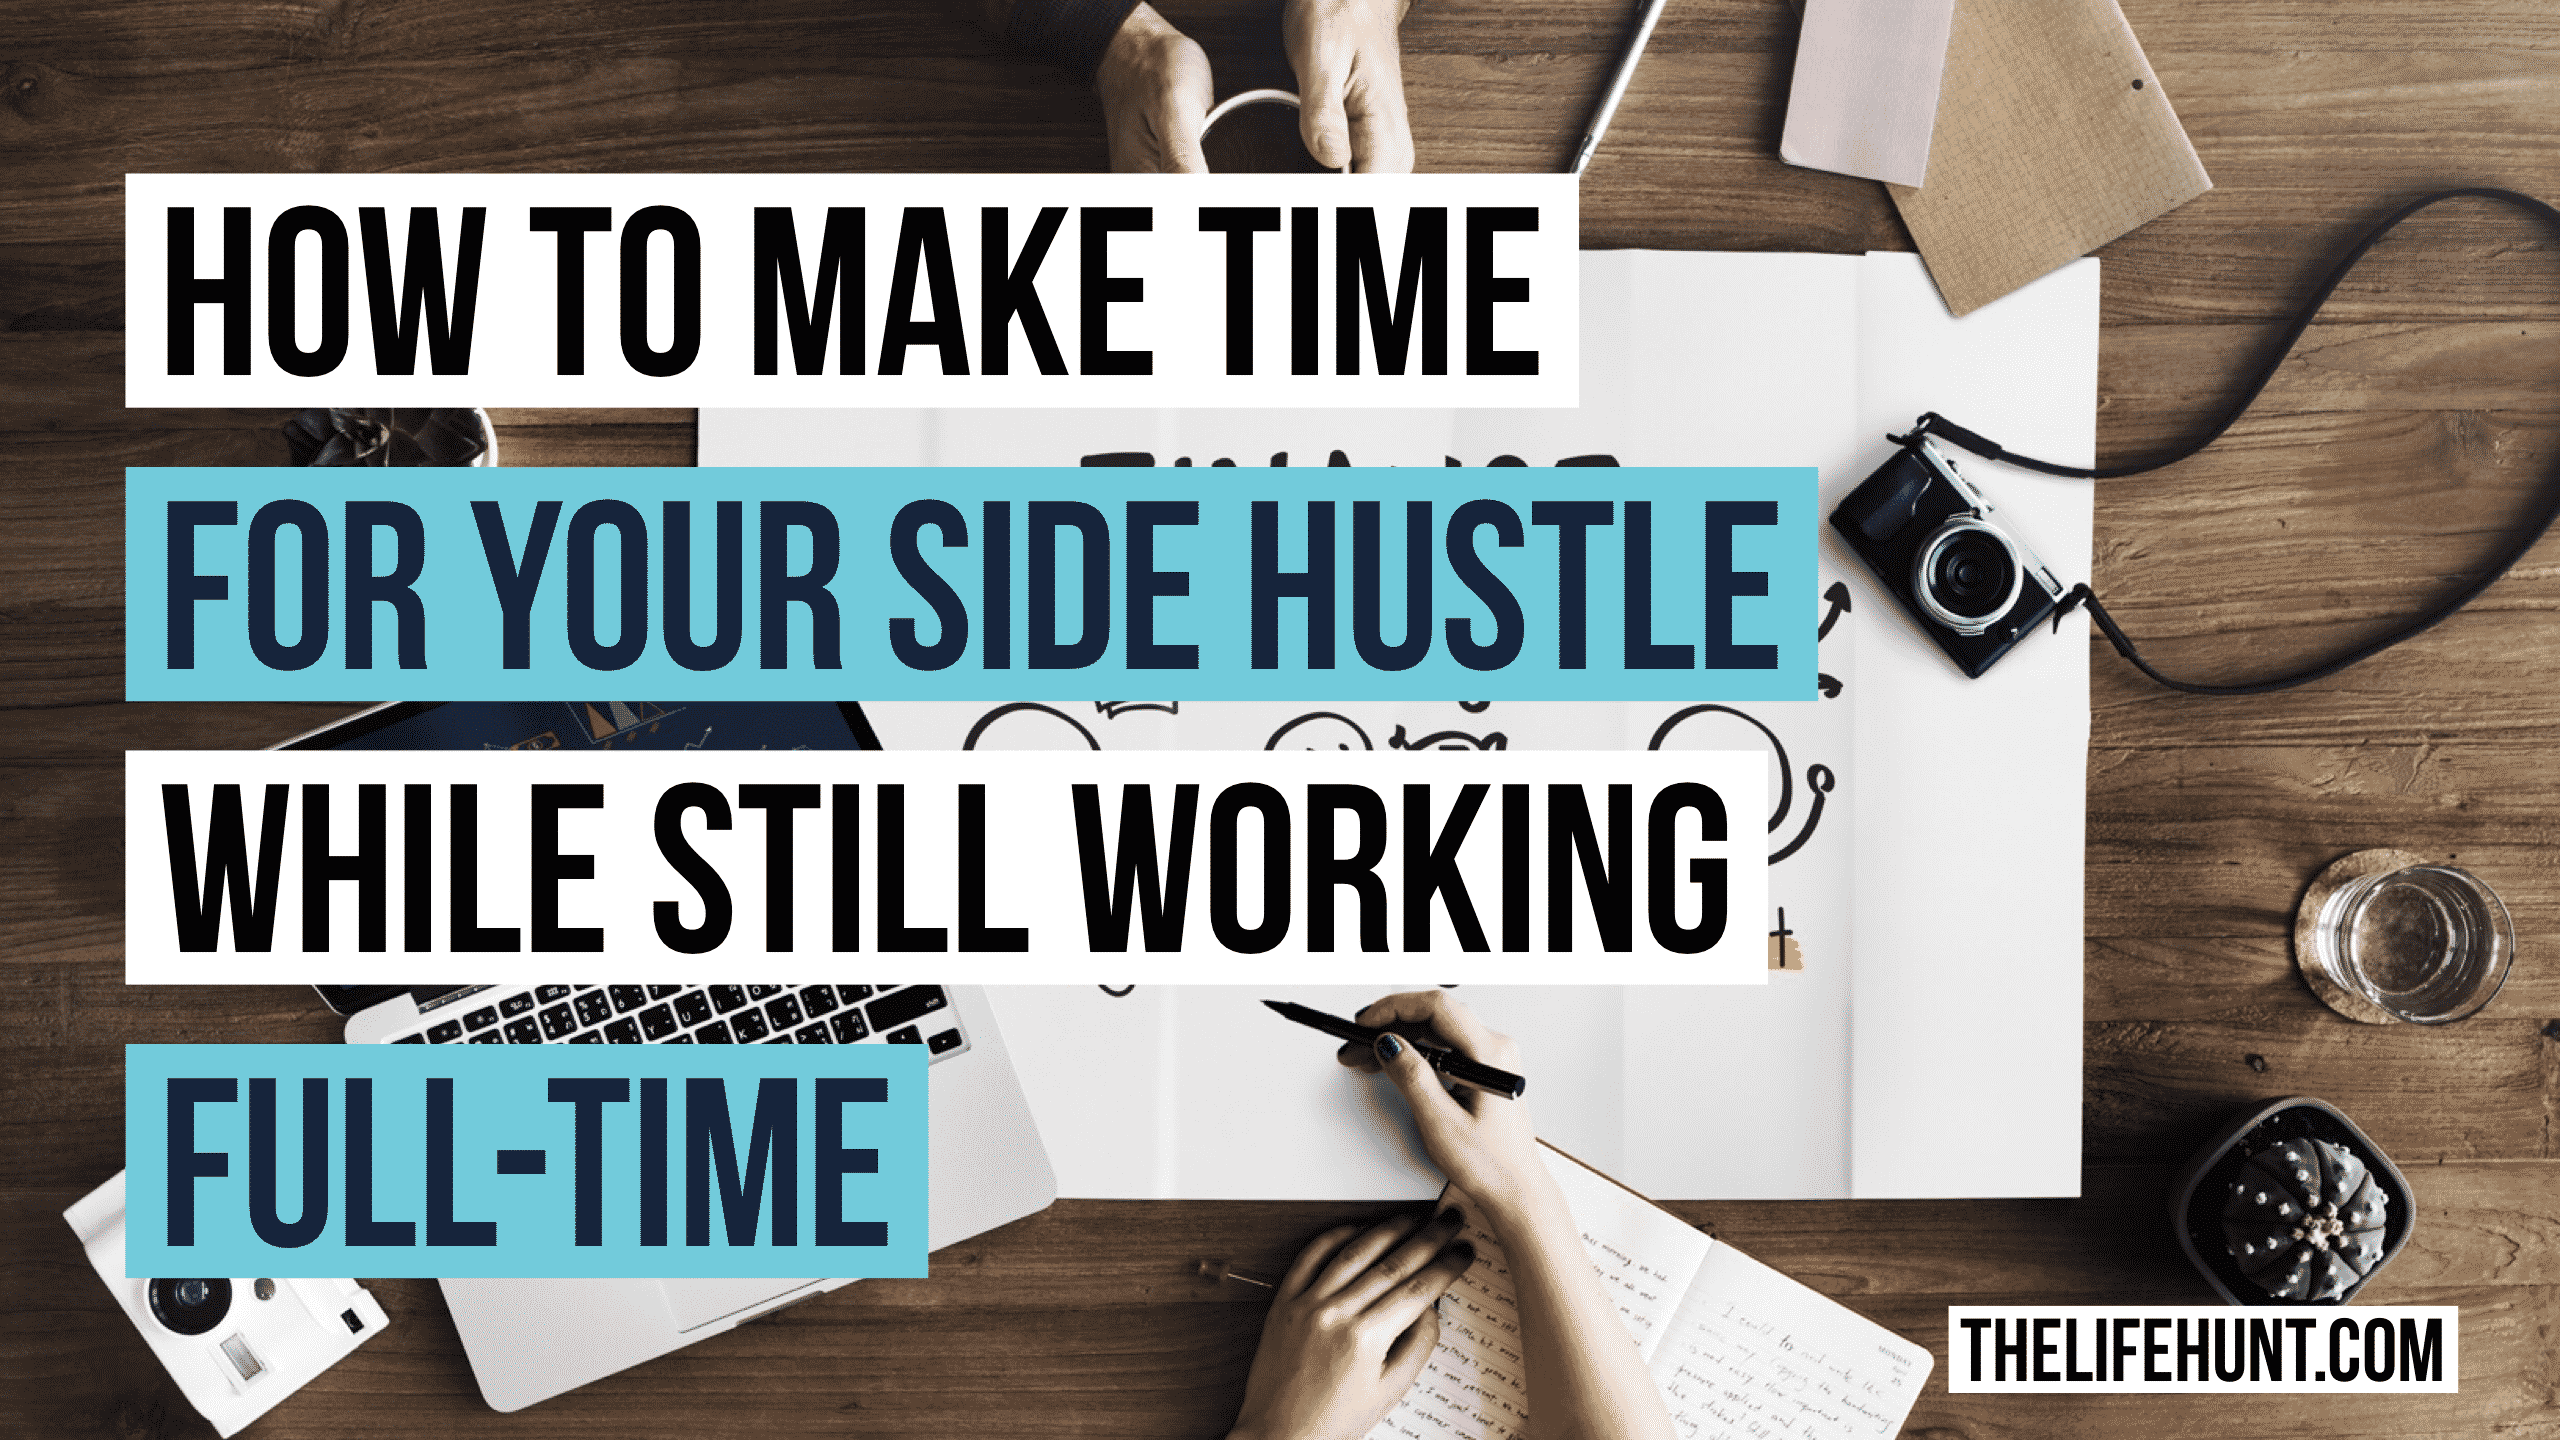 How to make time for your side hustle while still working full time